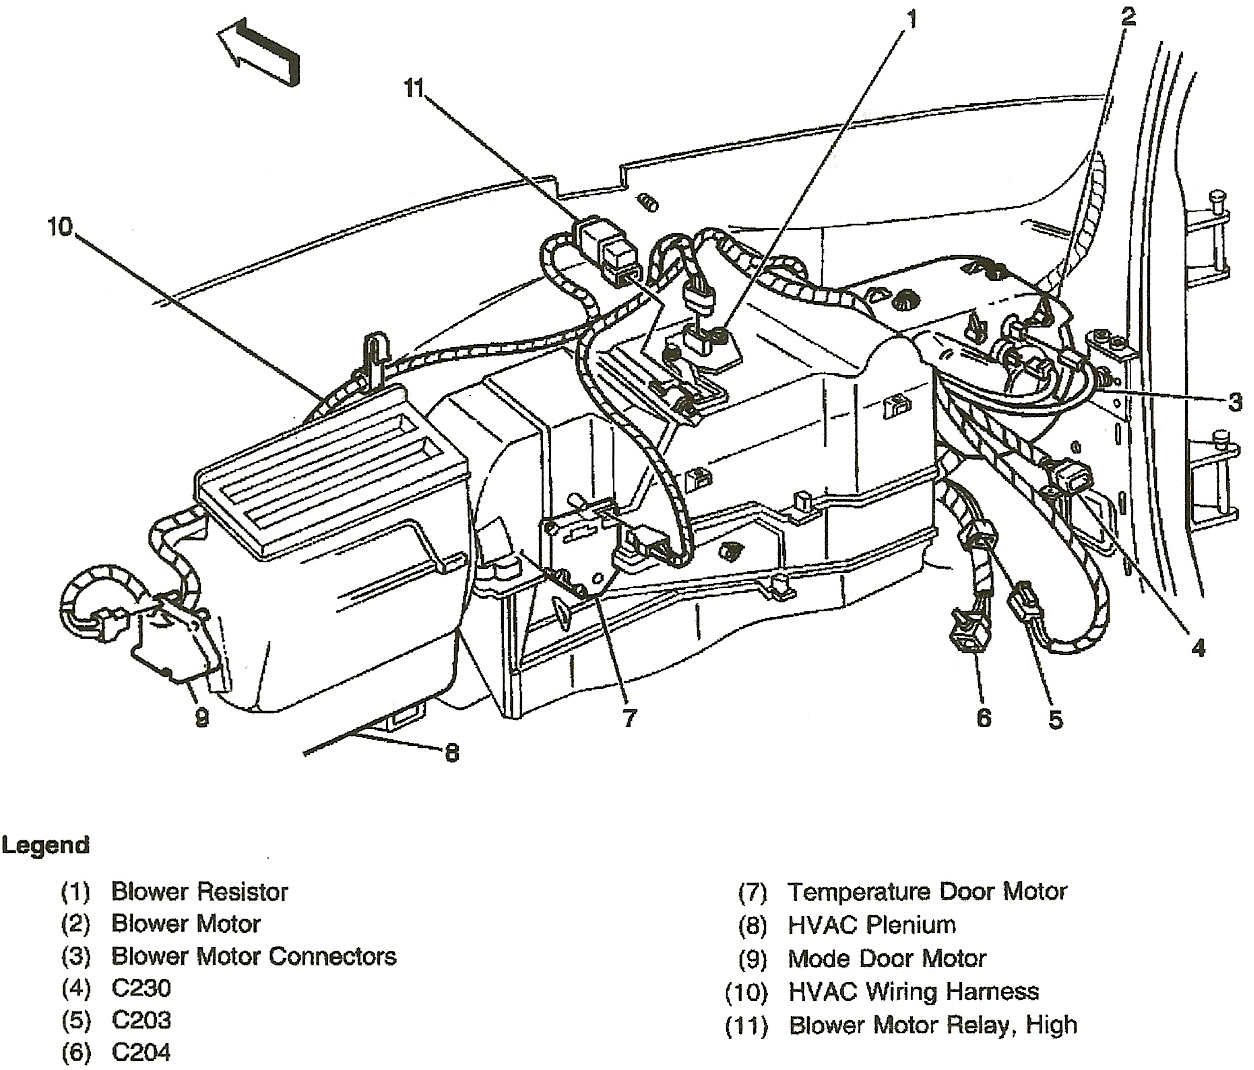 hight resolution of 2004 chevy suburban transmission diagram wiring diagram expert repair diagrams for 1999 chevrolet tahoe engine transmission